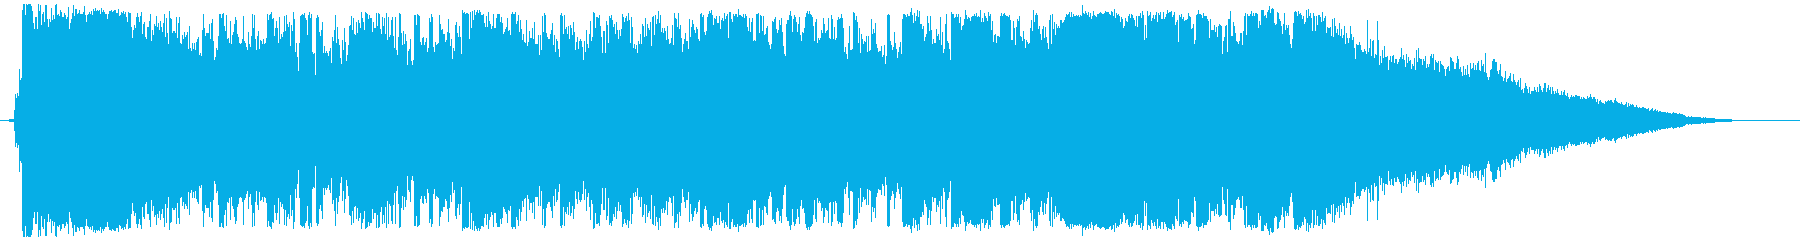 Luxurious ending of Disney-style waltz's reproduced waveform